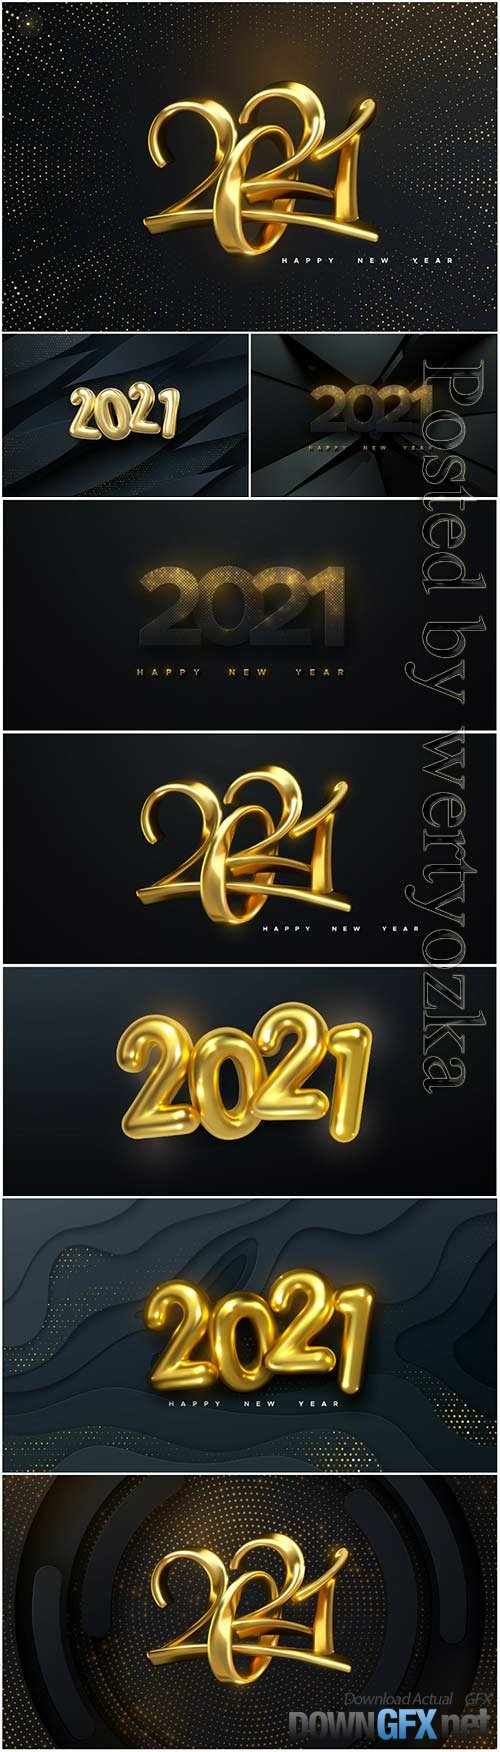 Happy new year background with realistic gold numbers 2021